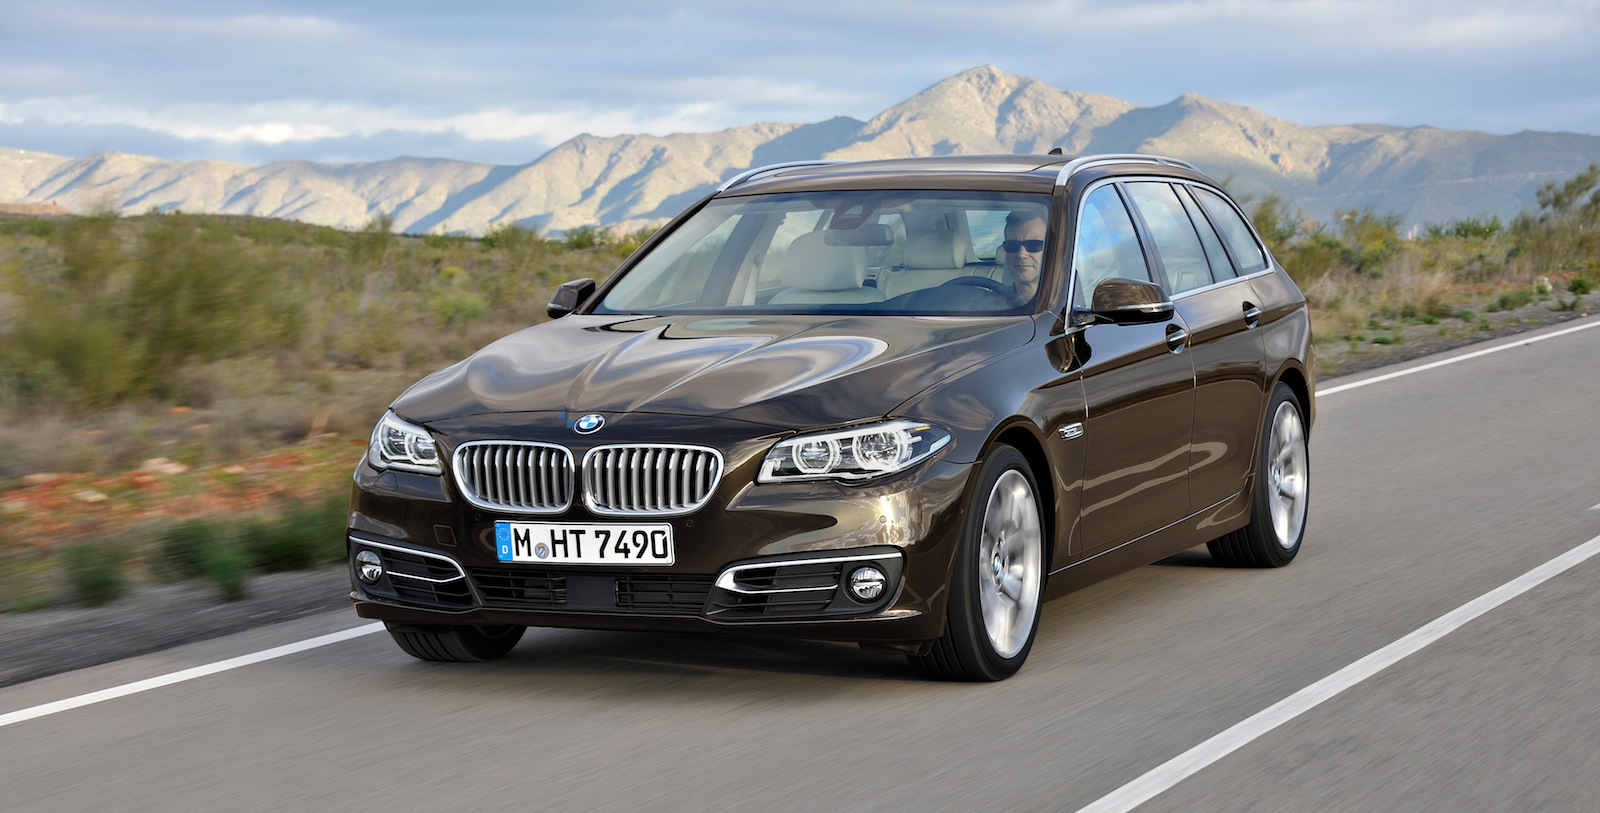 bmw 5 series new engines added tech for updated luxury range photos 1 of 17. Black Bedroom Furniture Sets. Home Design Ideas